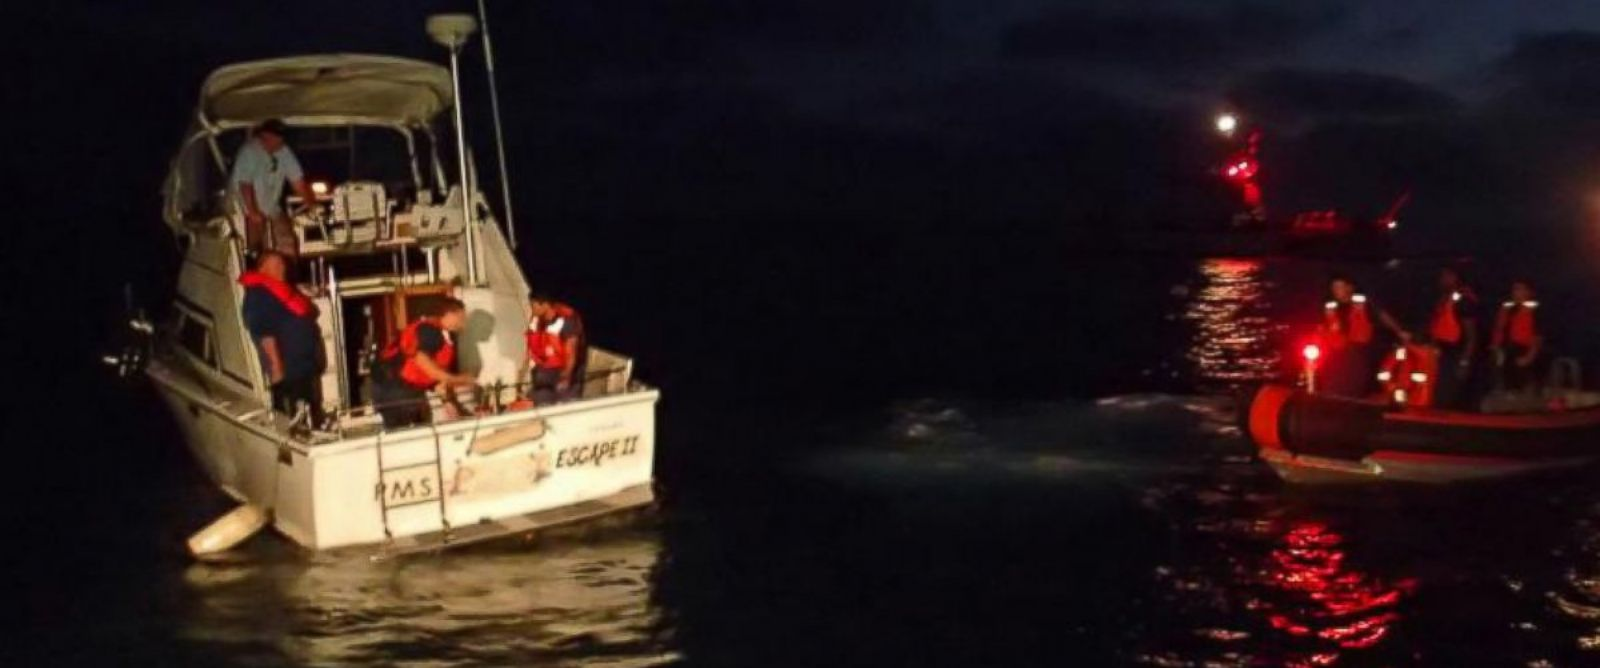 PHOTO: Rescue crews raced to help after a boat started sinking off the coast of San Diego, Aug. 30, 2014.